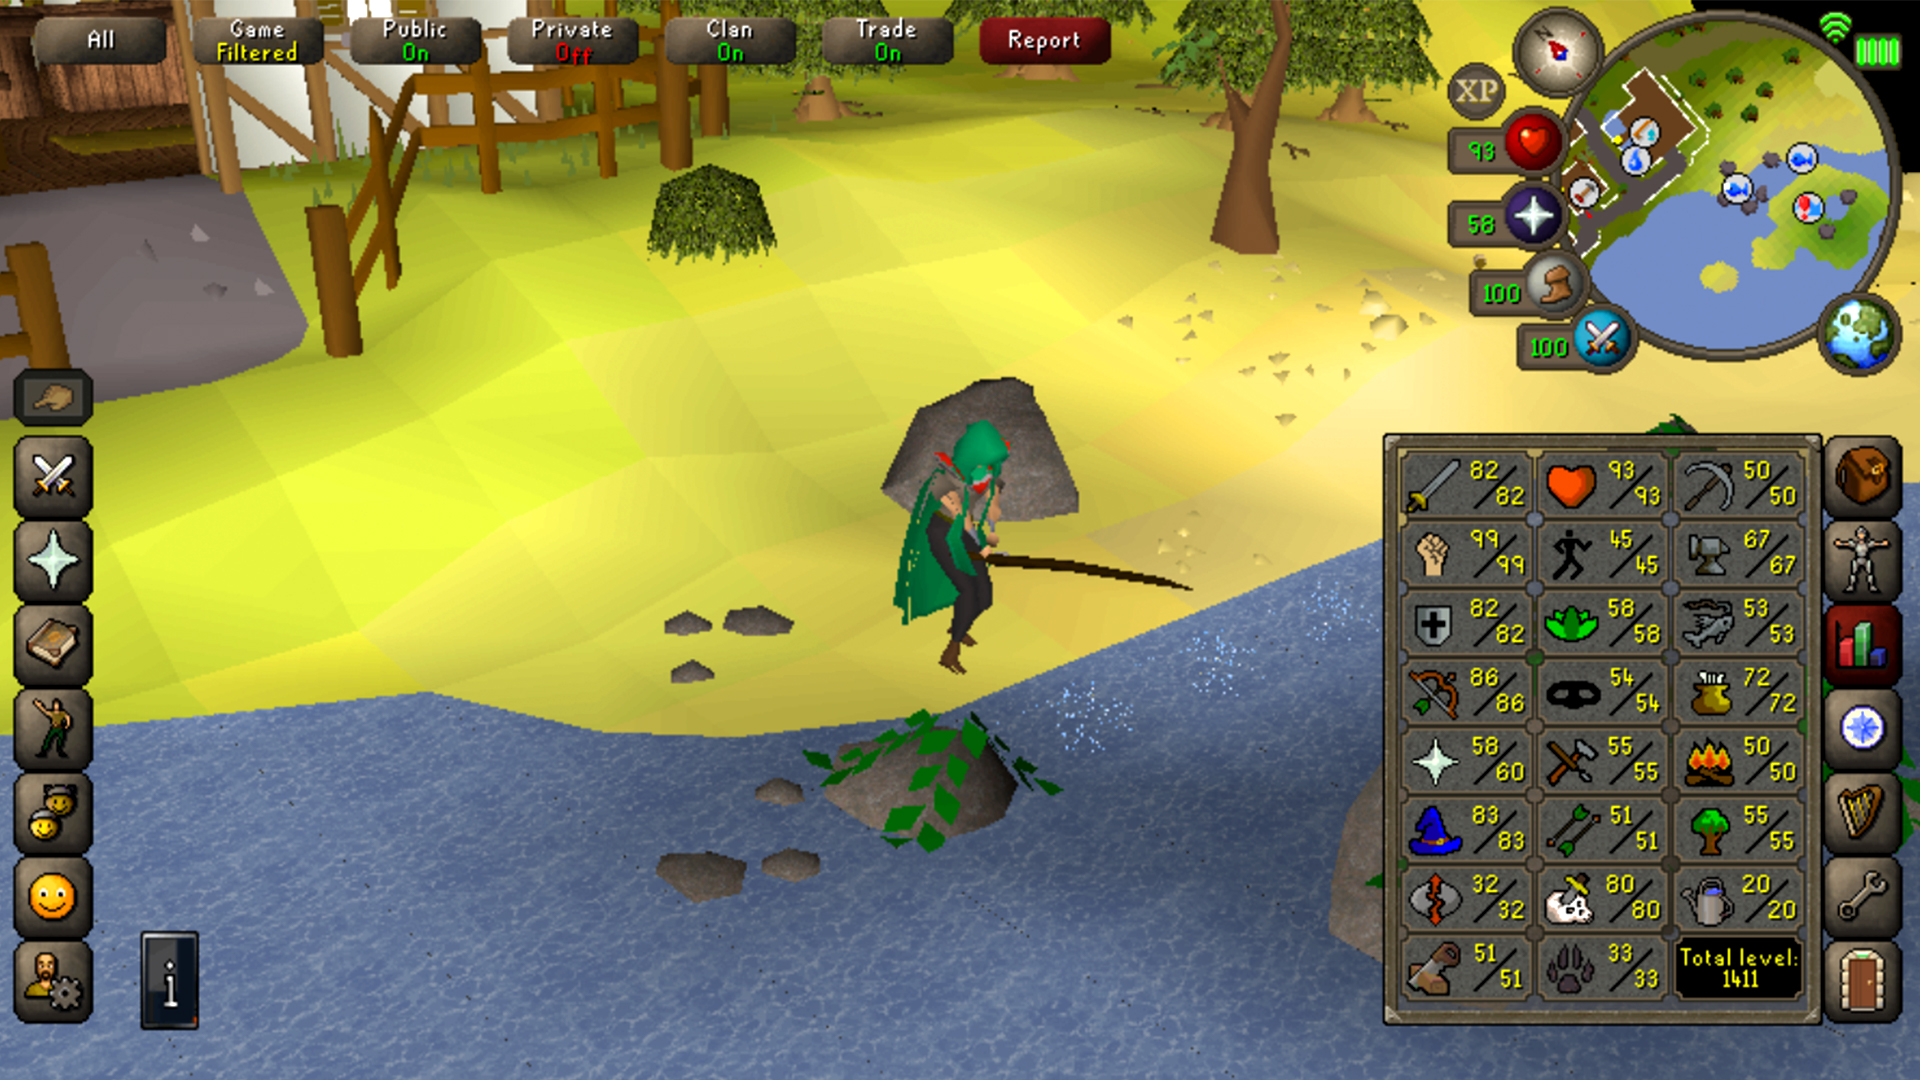 Press Release: Iconic MMO Old School RuneScape launches on iOS and